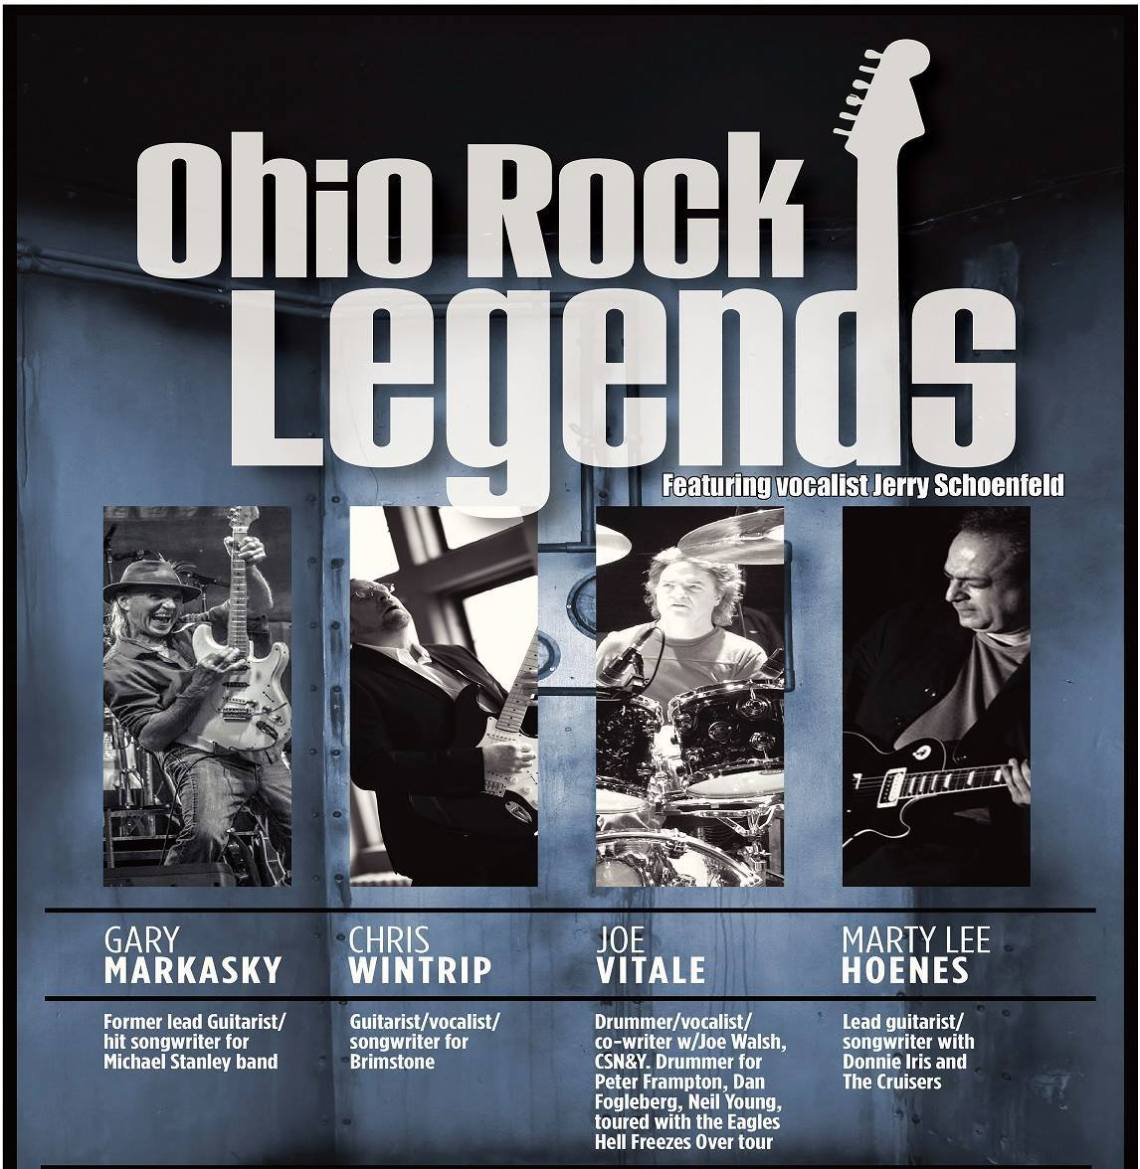 ohio rock legends 020616